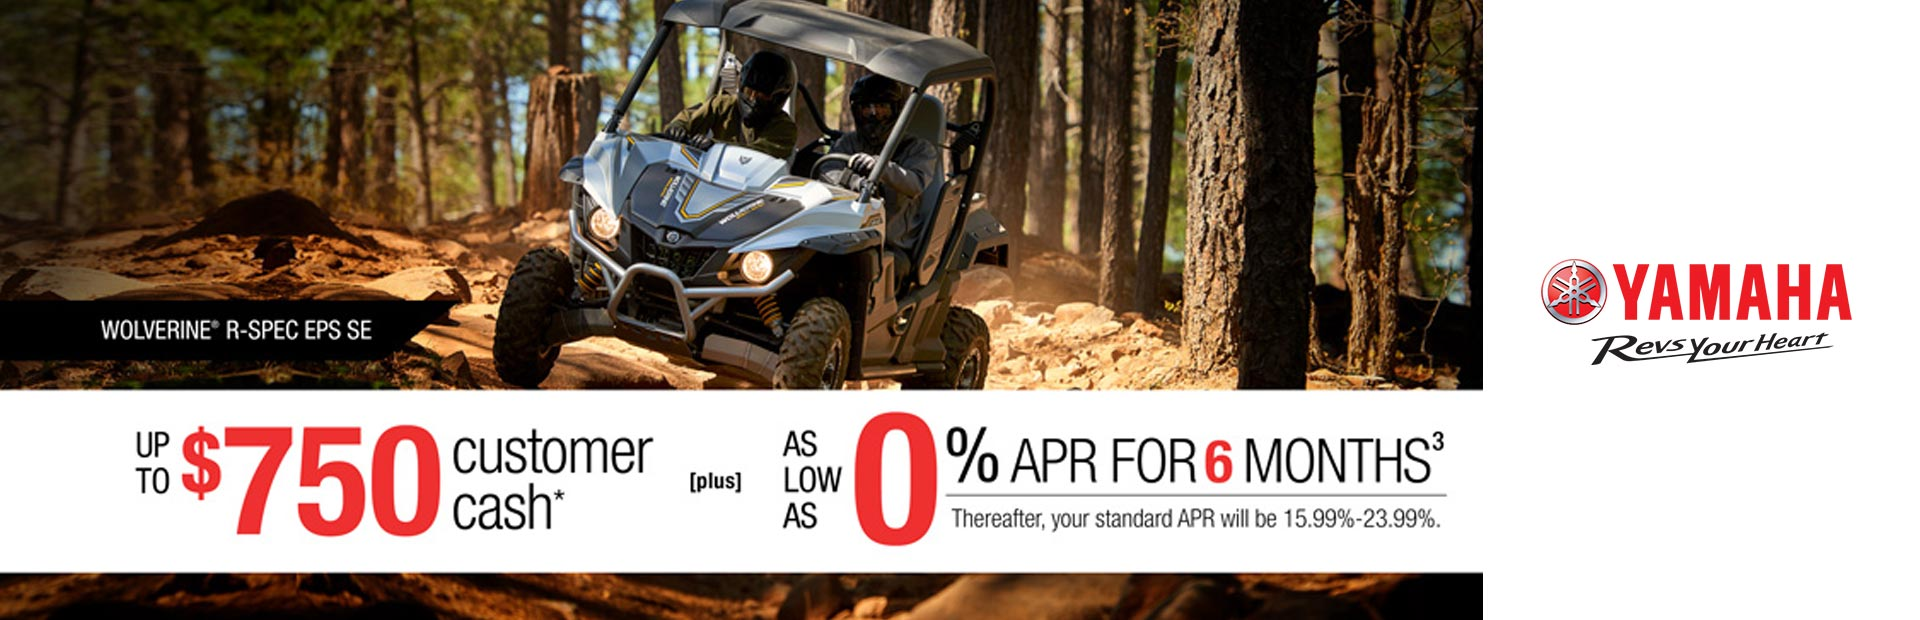 Yamaha: As Low As 0% APR Until Paid In Full (SxS)